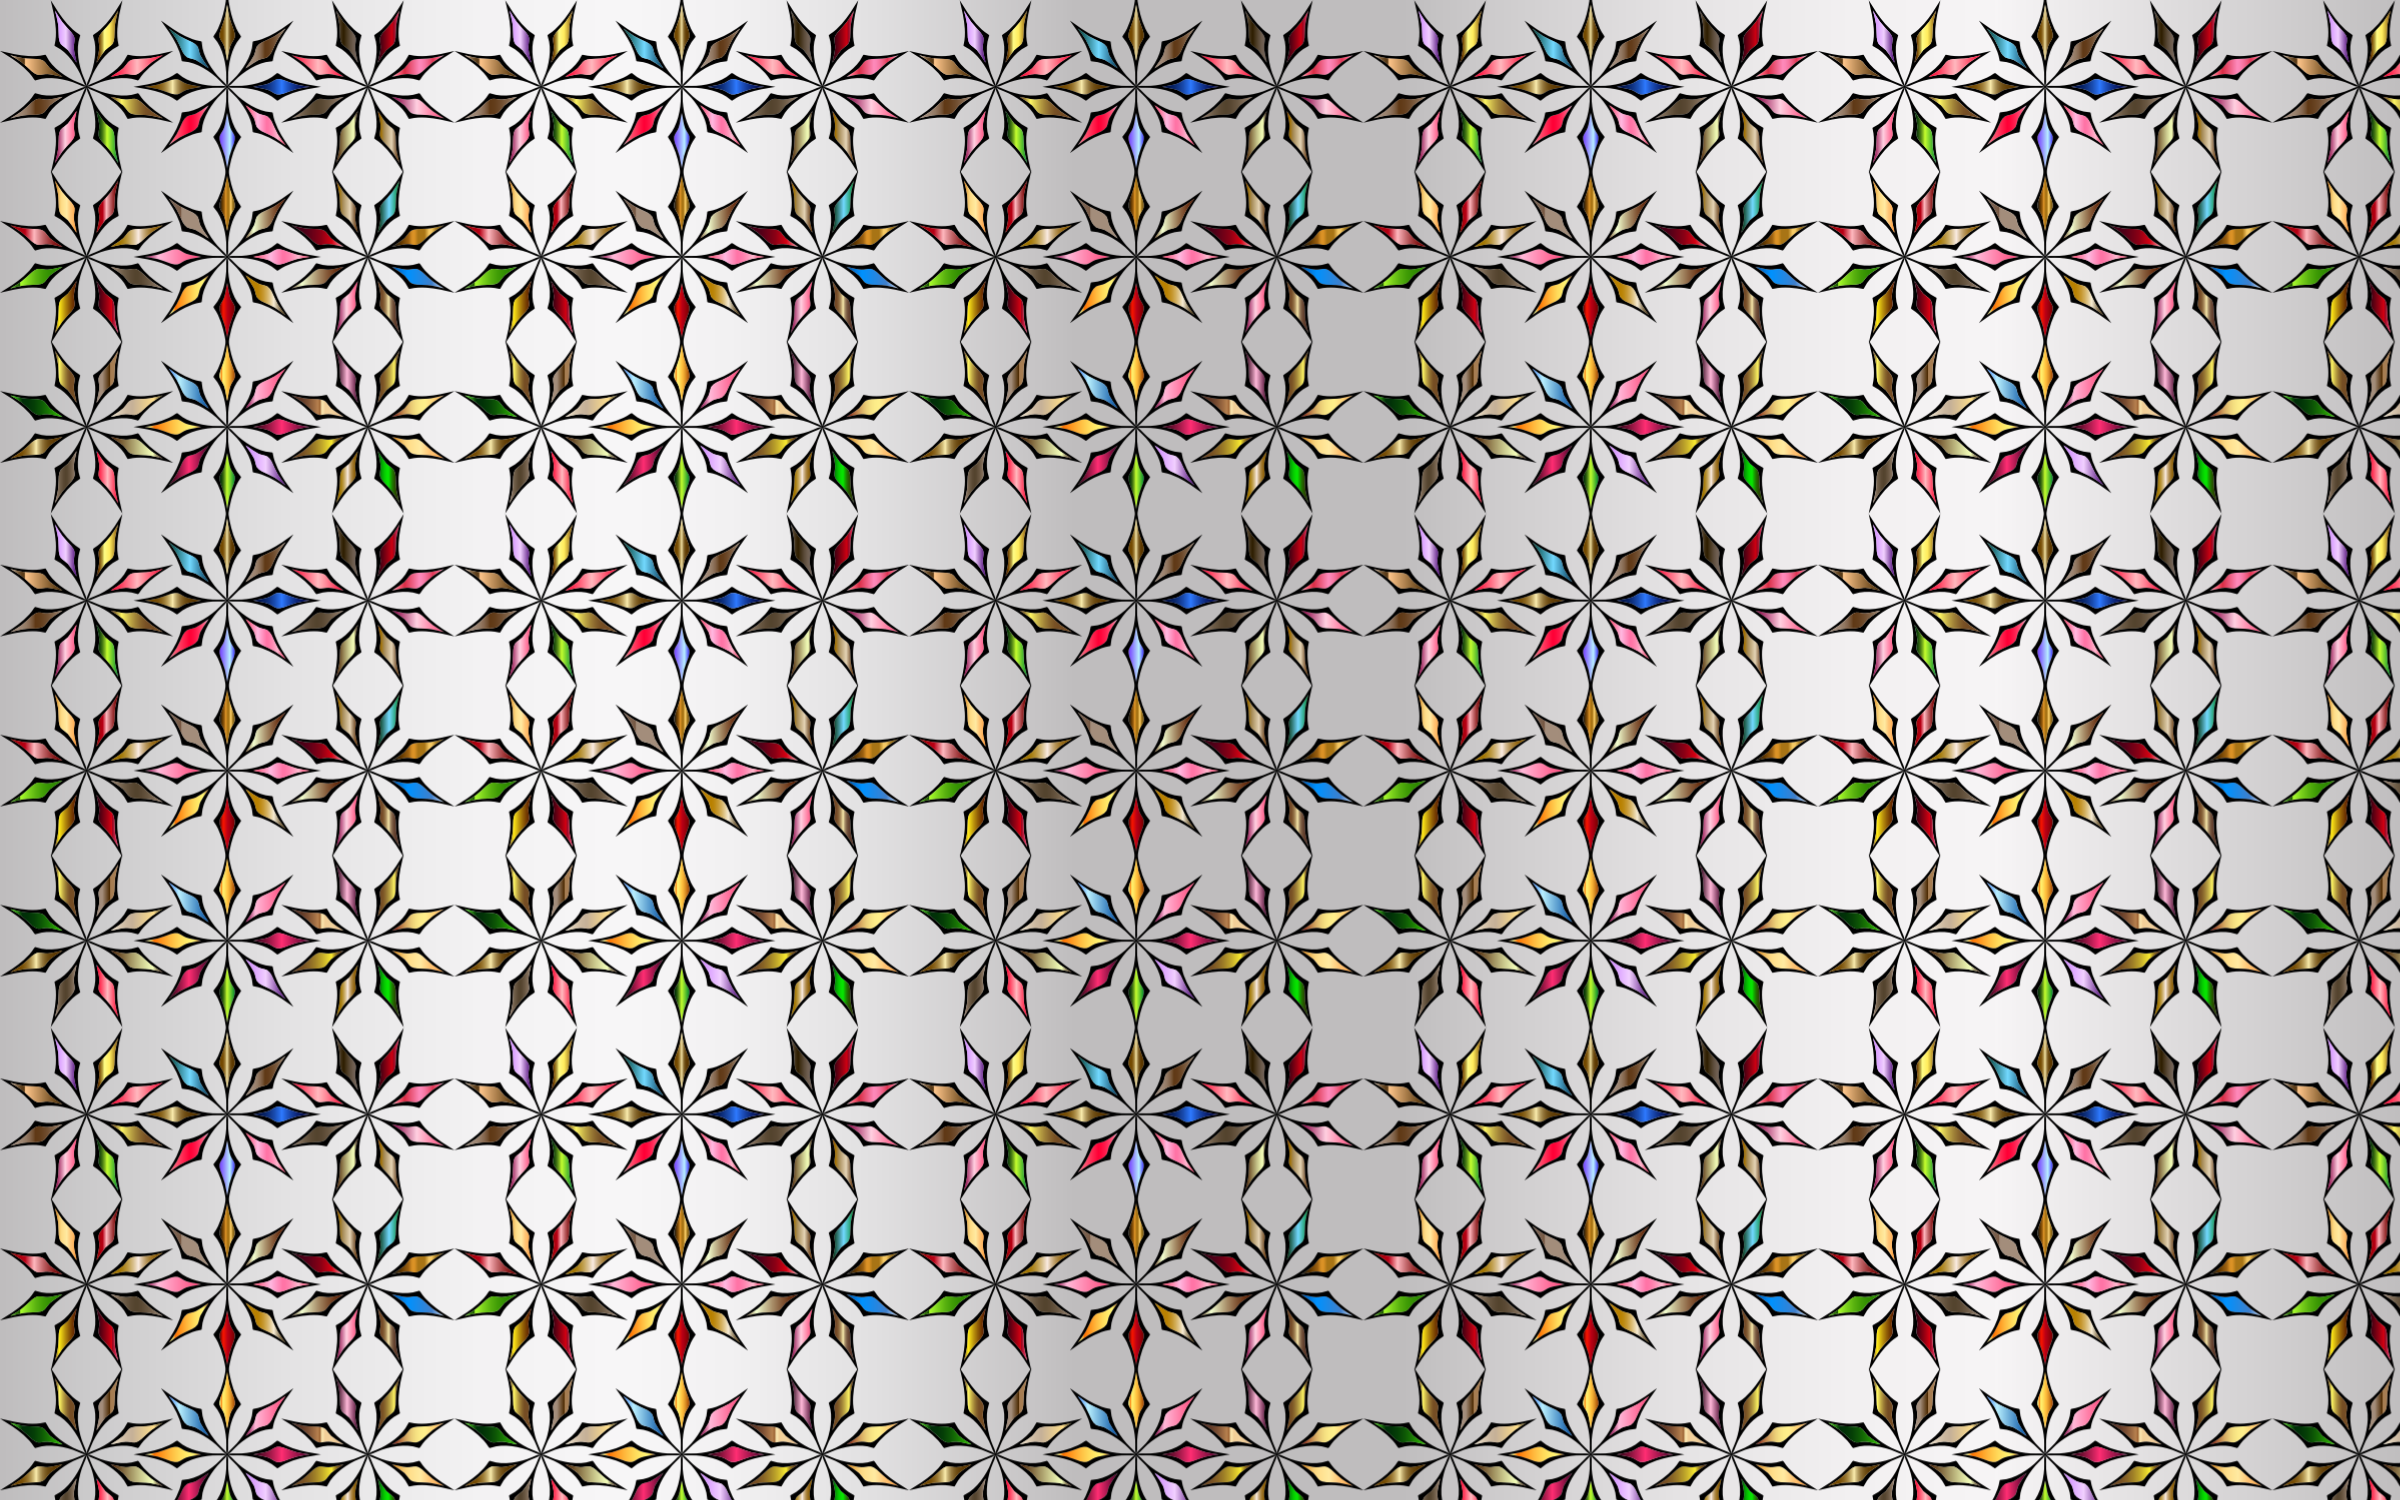 Seamless Chromatic Ornamental Divider Pattern With Background by GDJ